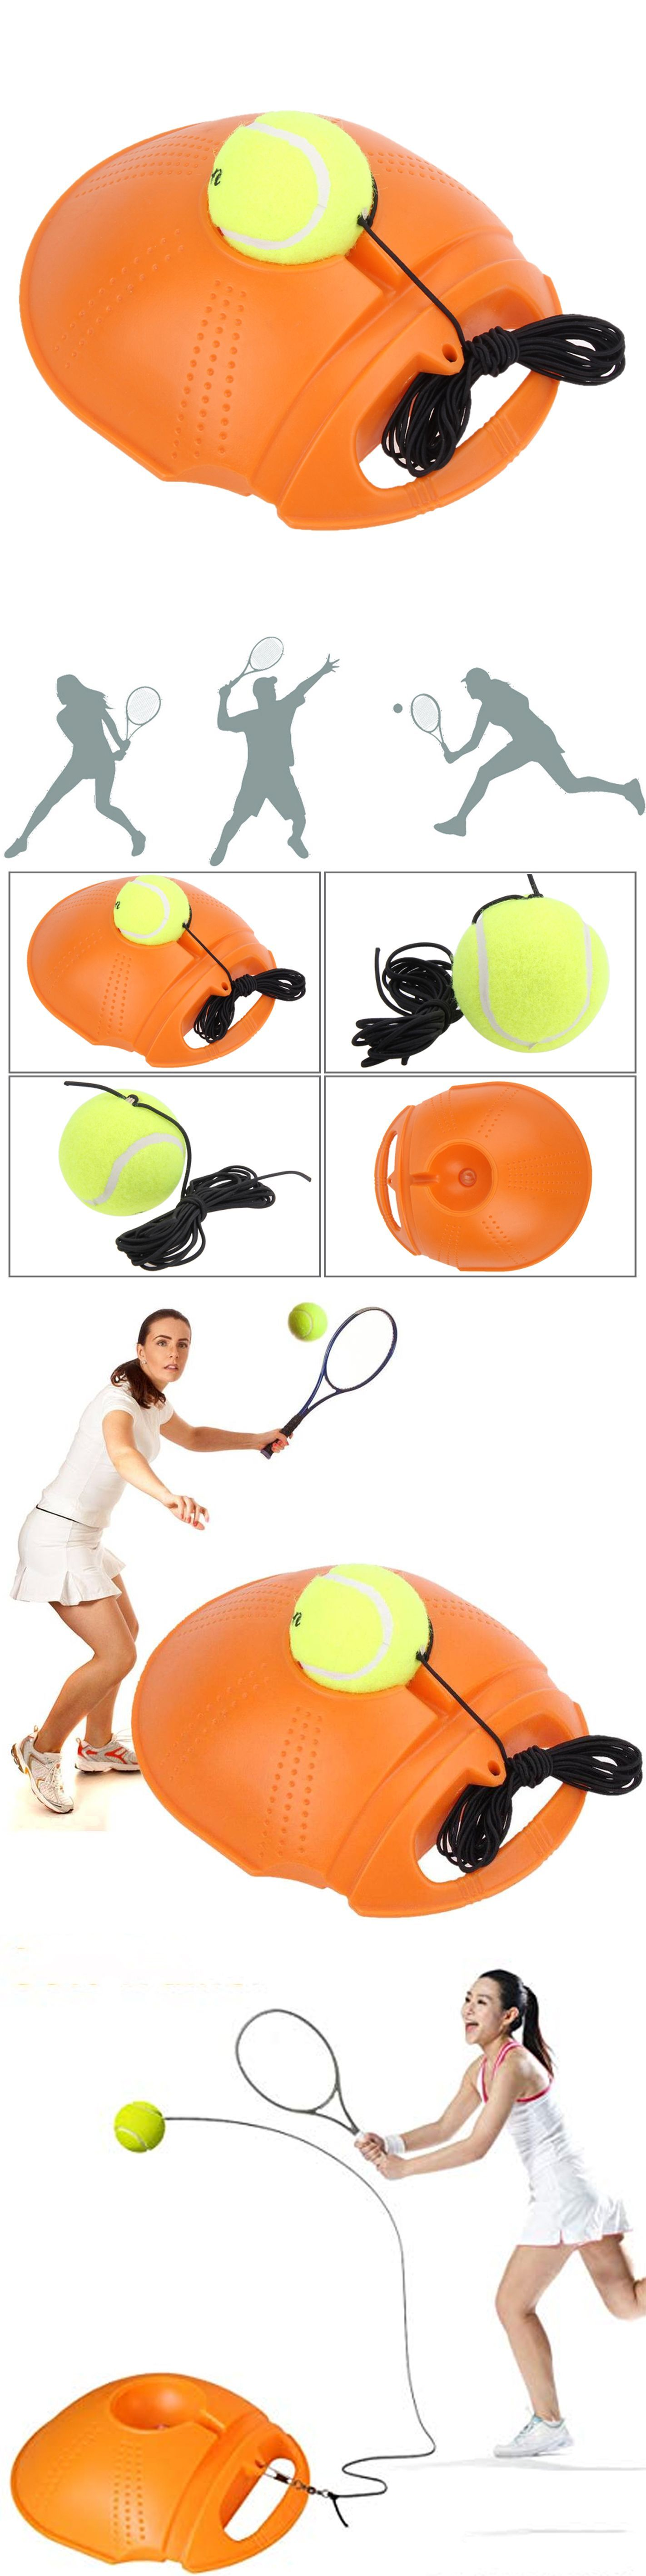 Learn Tennis In Its Easiest Way As Never Before With Tennis Trainer Tool Self Learn Tennis Without Wasting Time I With Images Tennis Trainer Play Tennis Tennis Techniques